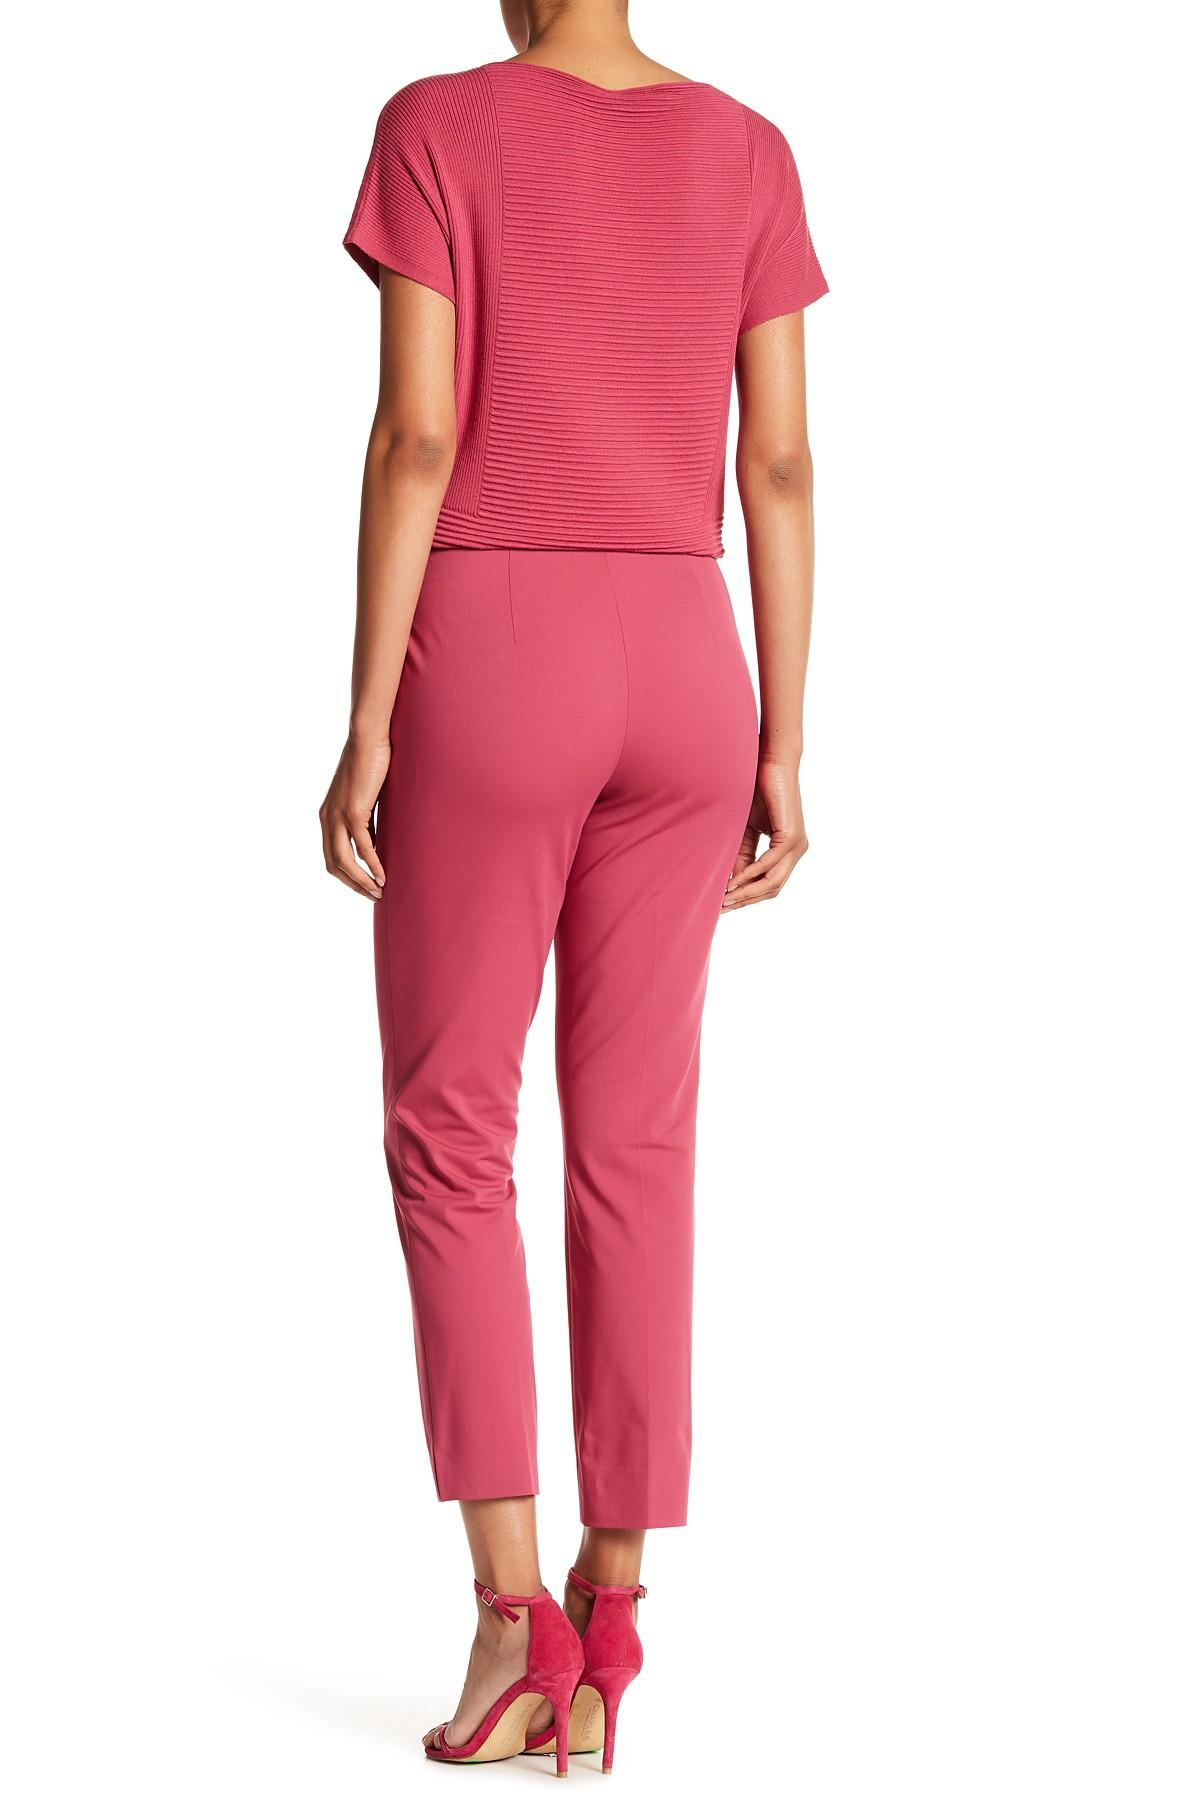 Lyst lafayette 148 new york stanton pant in pink for Nordstrom rack new york